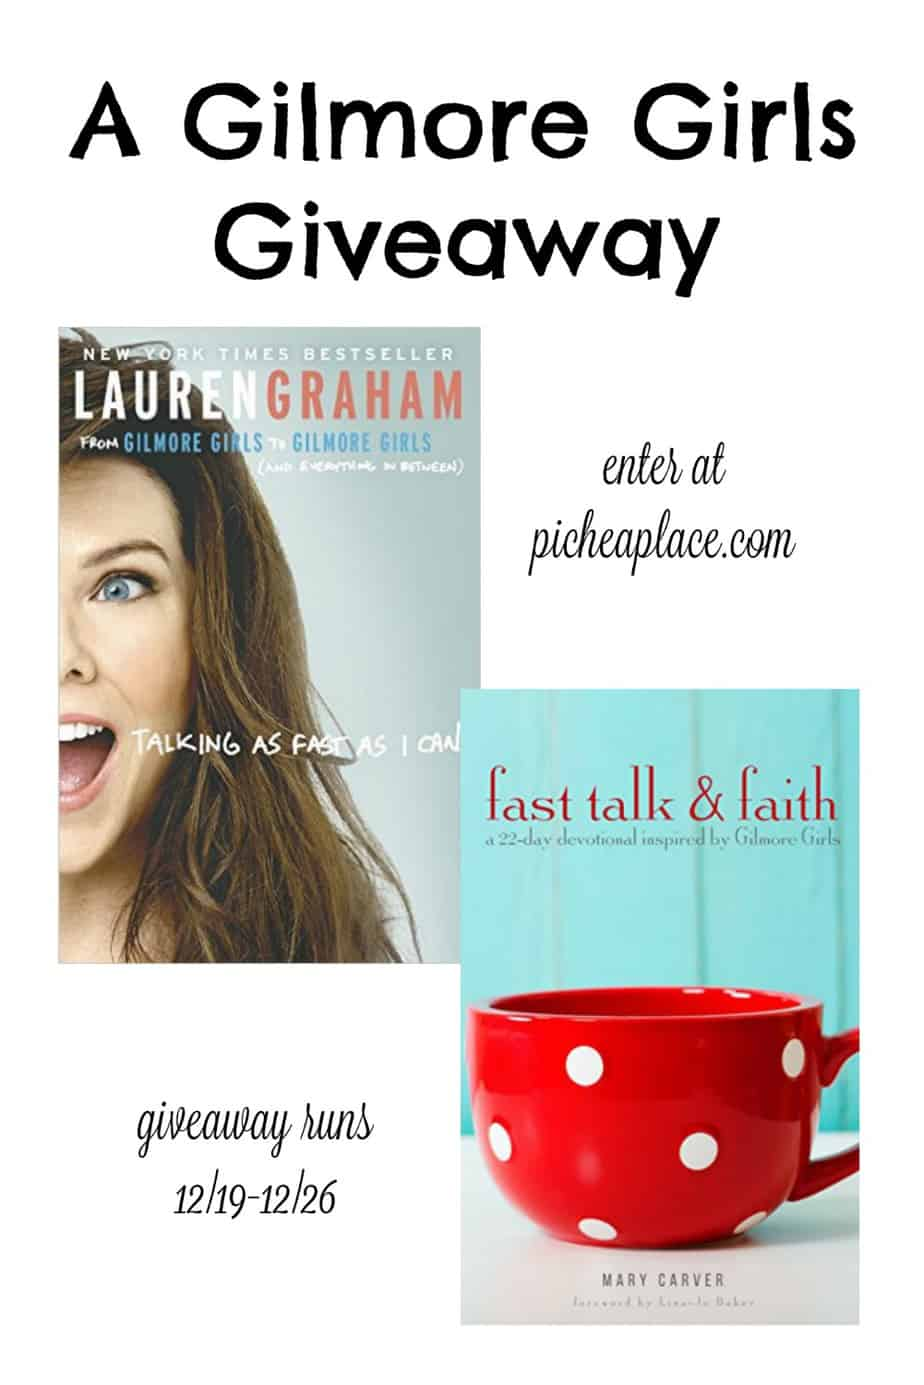 A Gilmore Girls Giveaway - ends December 26th